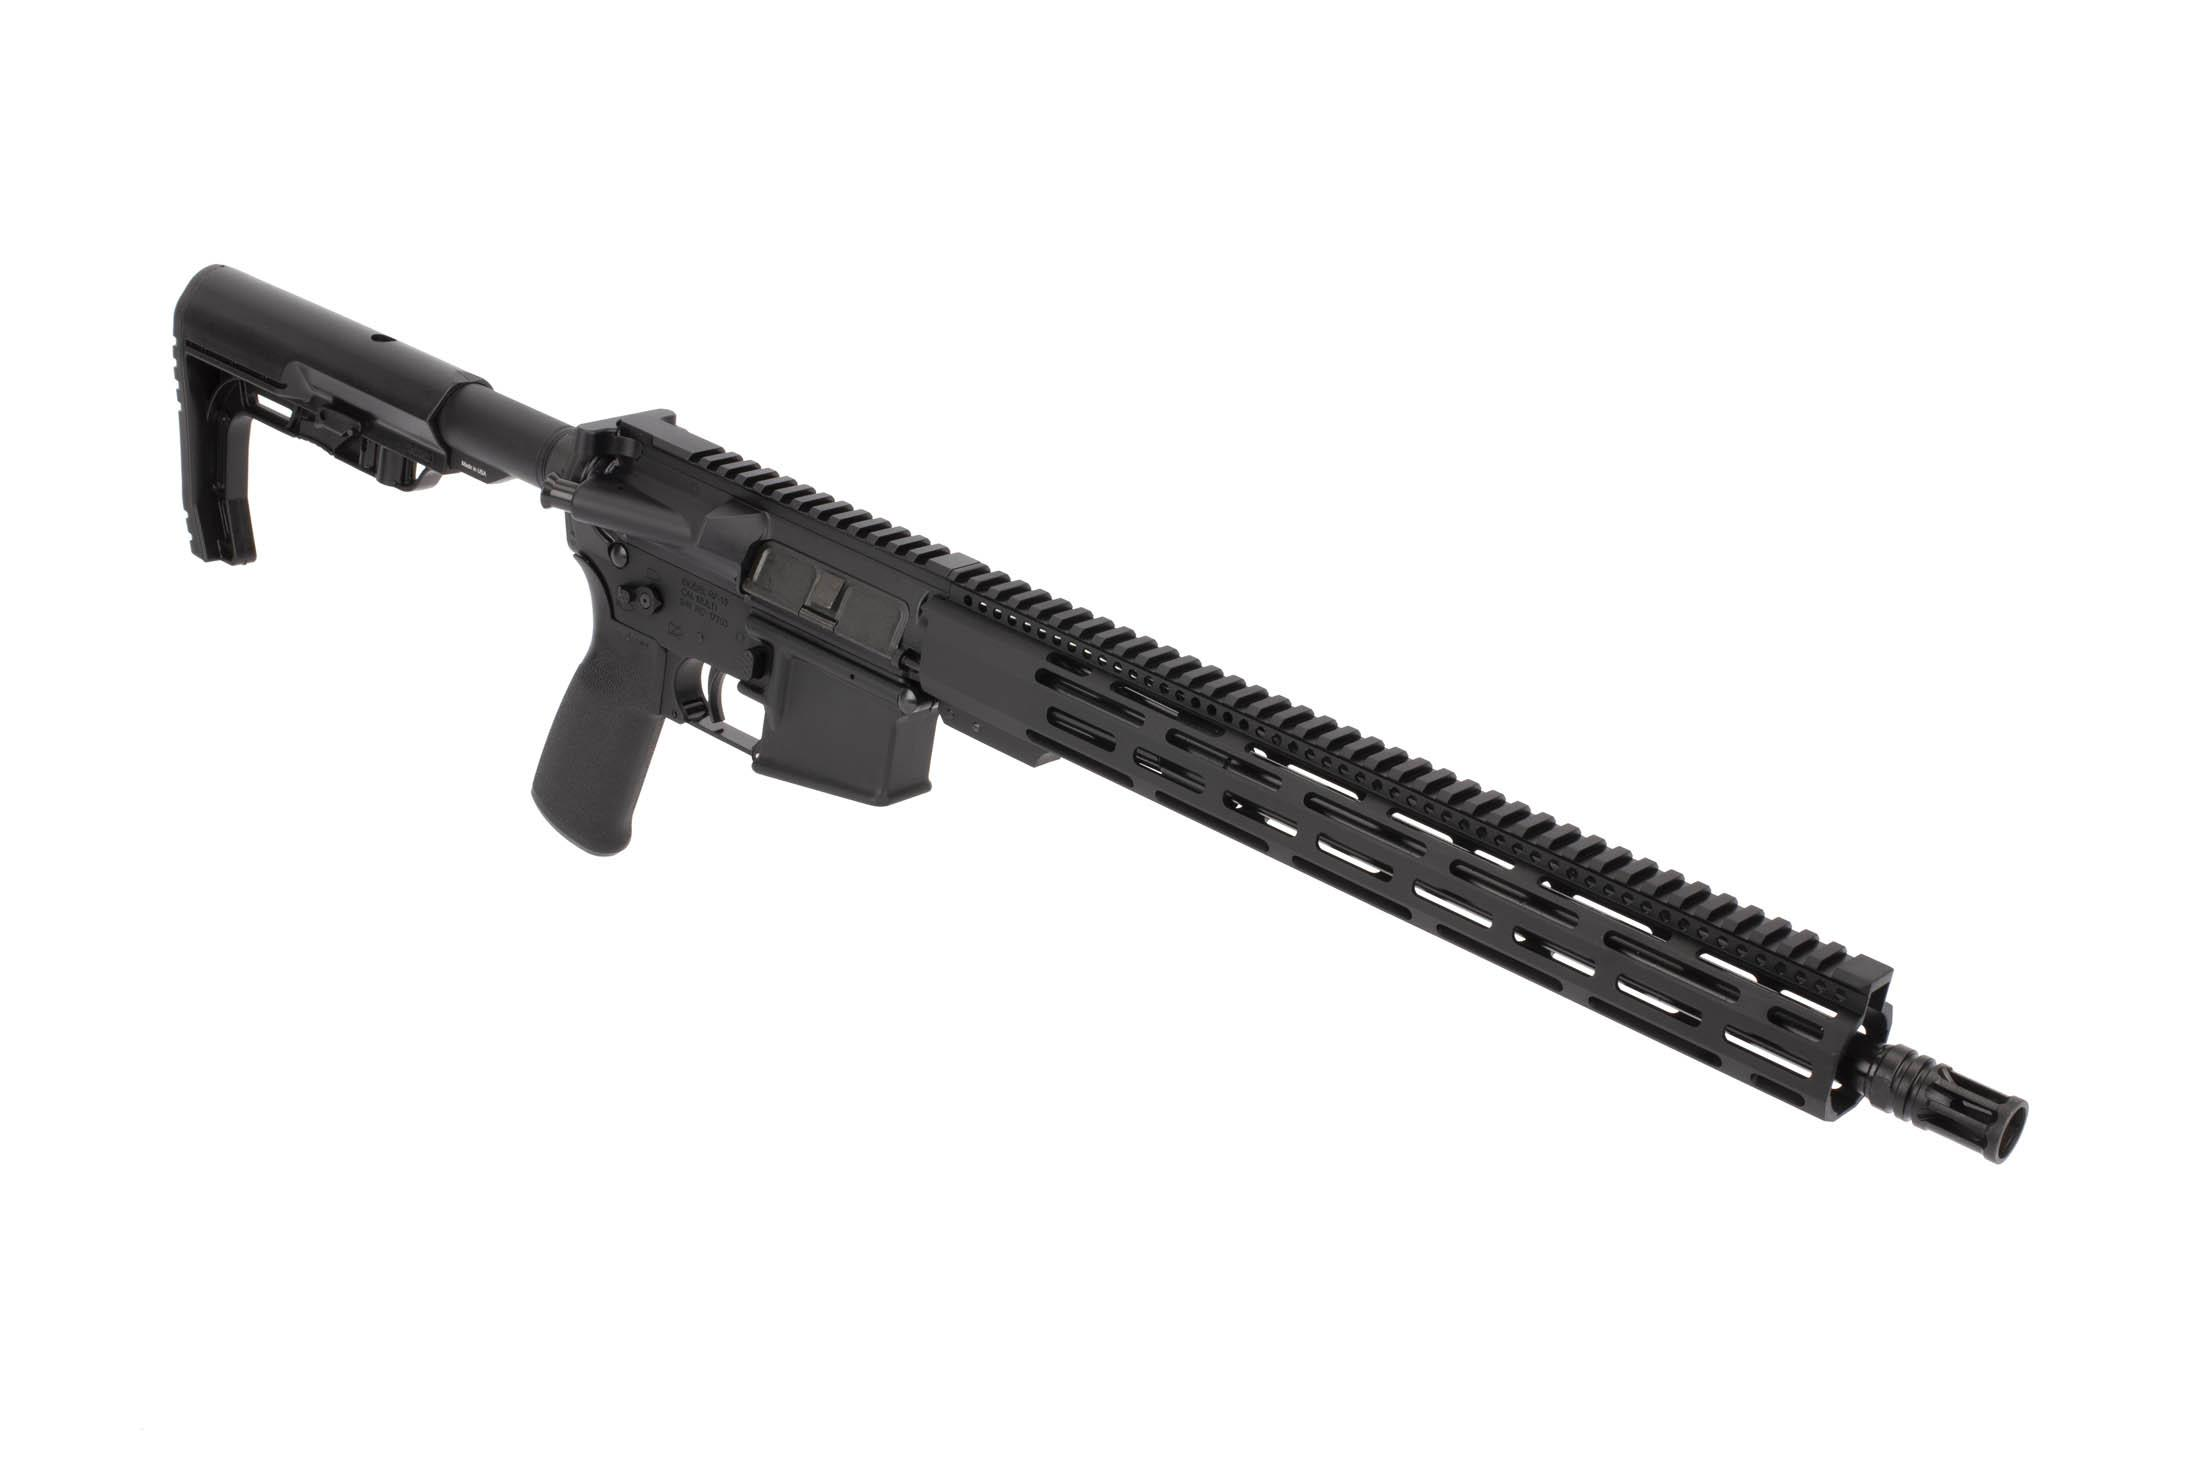 Radical Firearms 300 BLK AR-15 with 16in barrel features a lightweight 15in M-LOK handguard